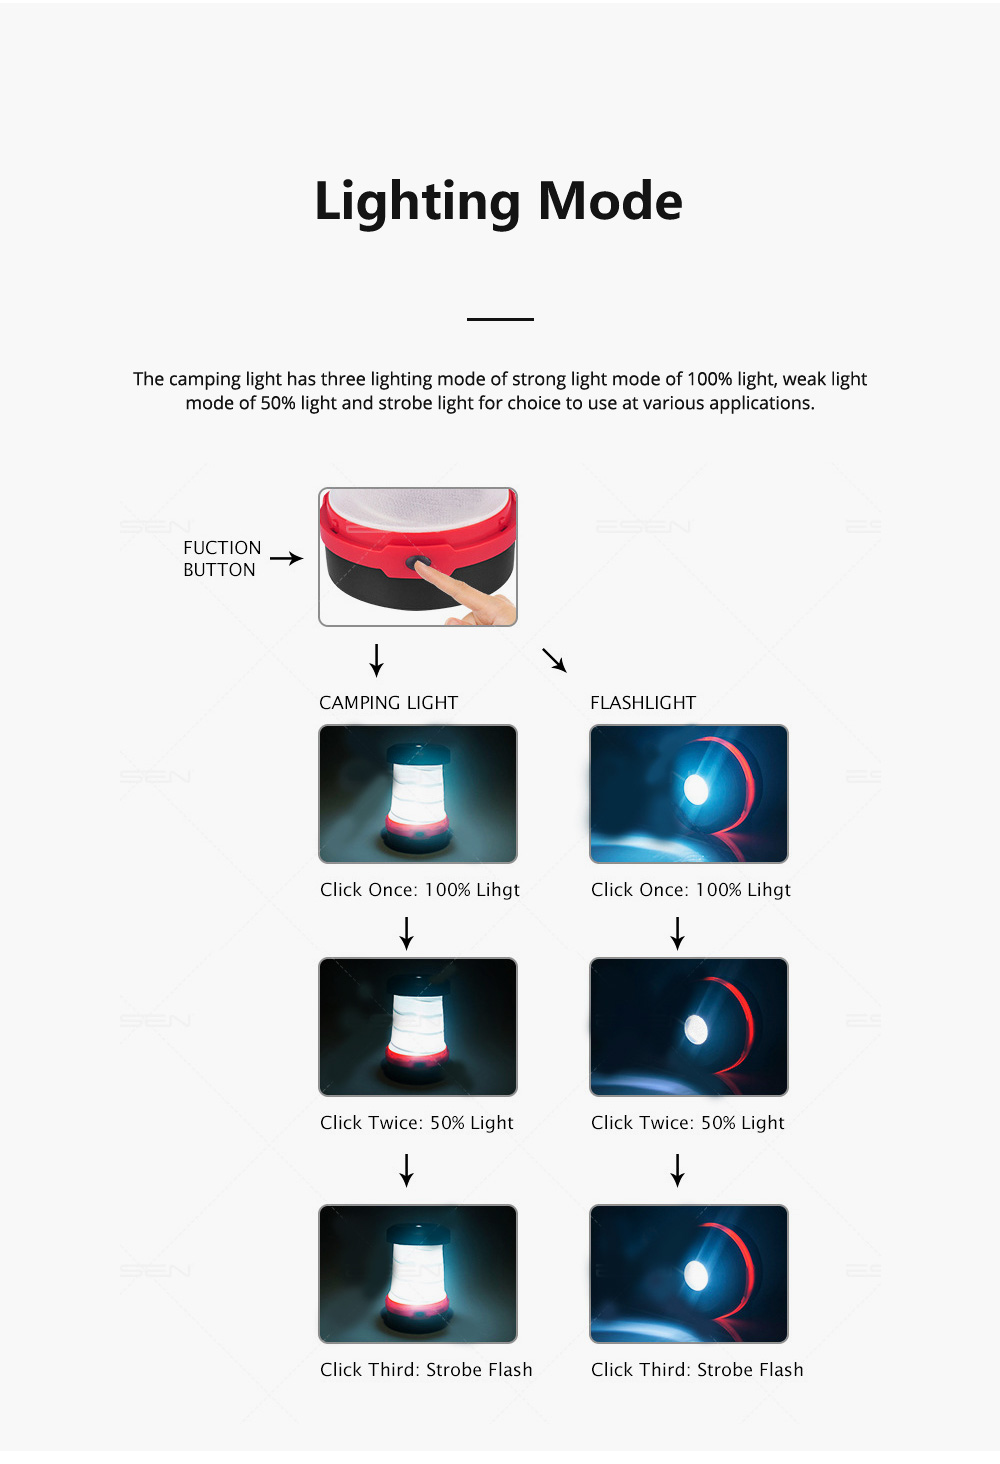 Rechargeable Pop-up LED Camping Light for Outdoor Activity Foldable Portable Telescopic LED Tent Lamp Handheld USB Chargeable Camping Lantern Ultra Bright Camping Lamp 6